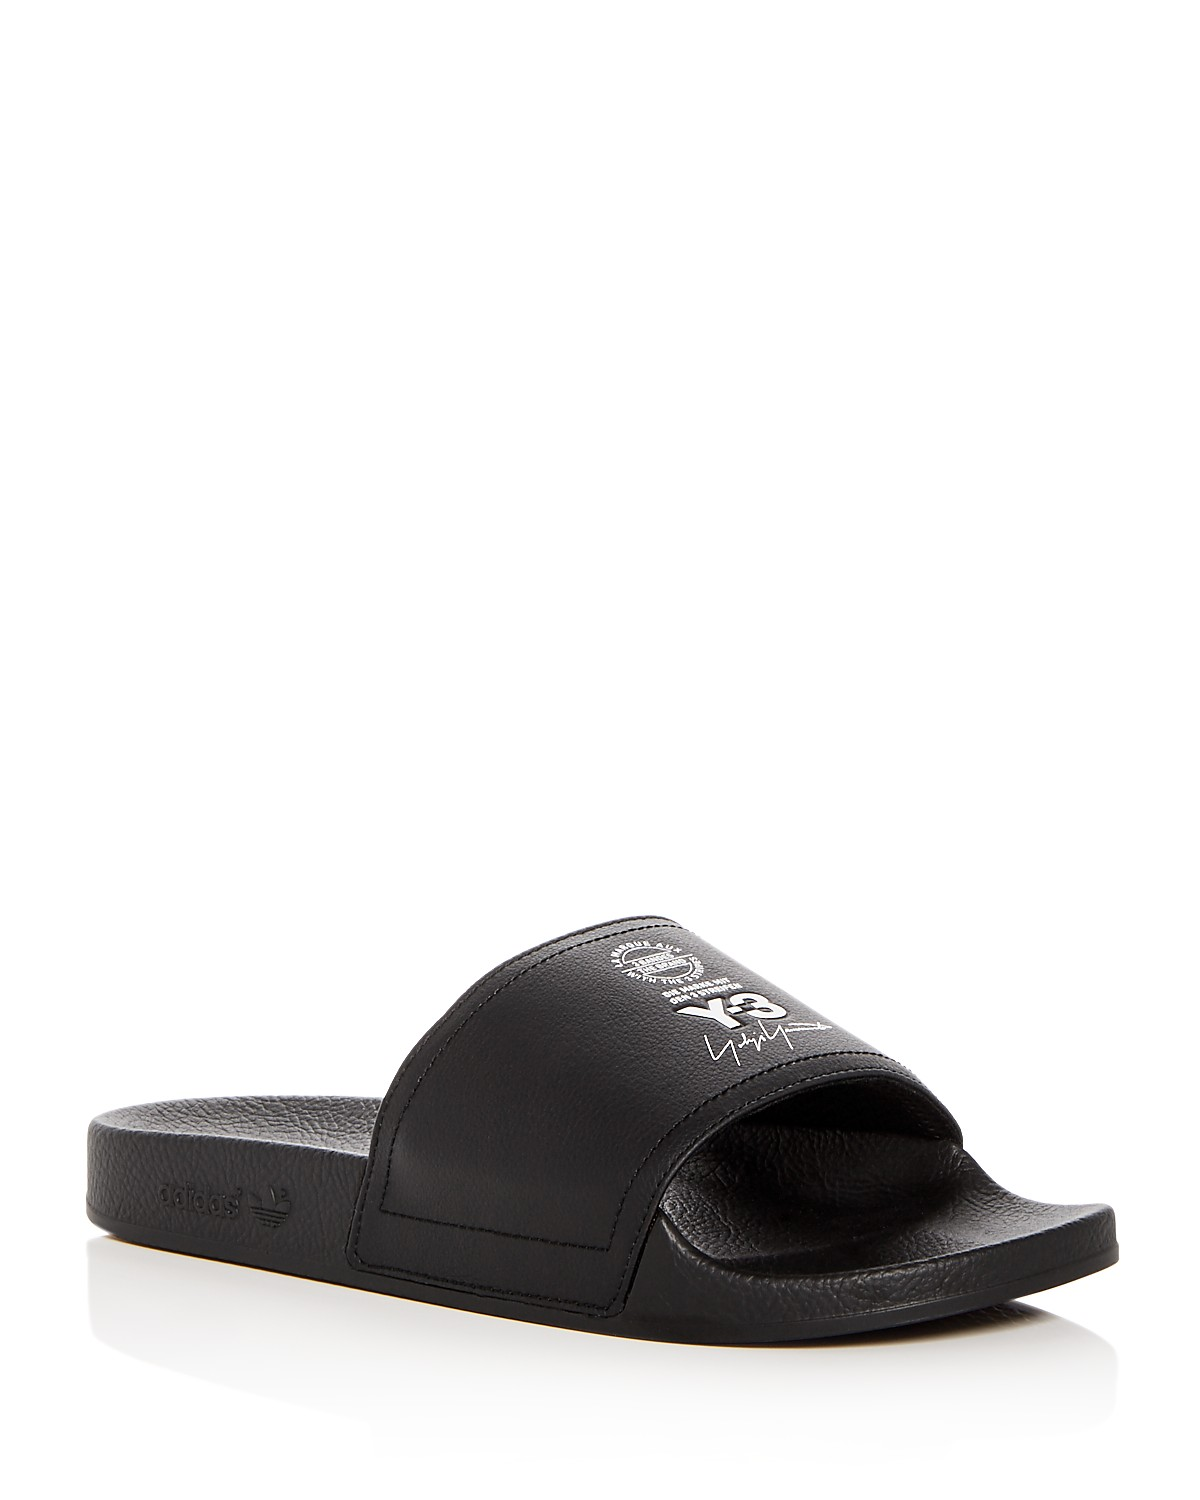 Y-3 Men's Adilette Slide Sandals XLXtHyN